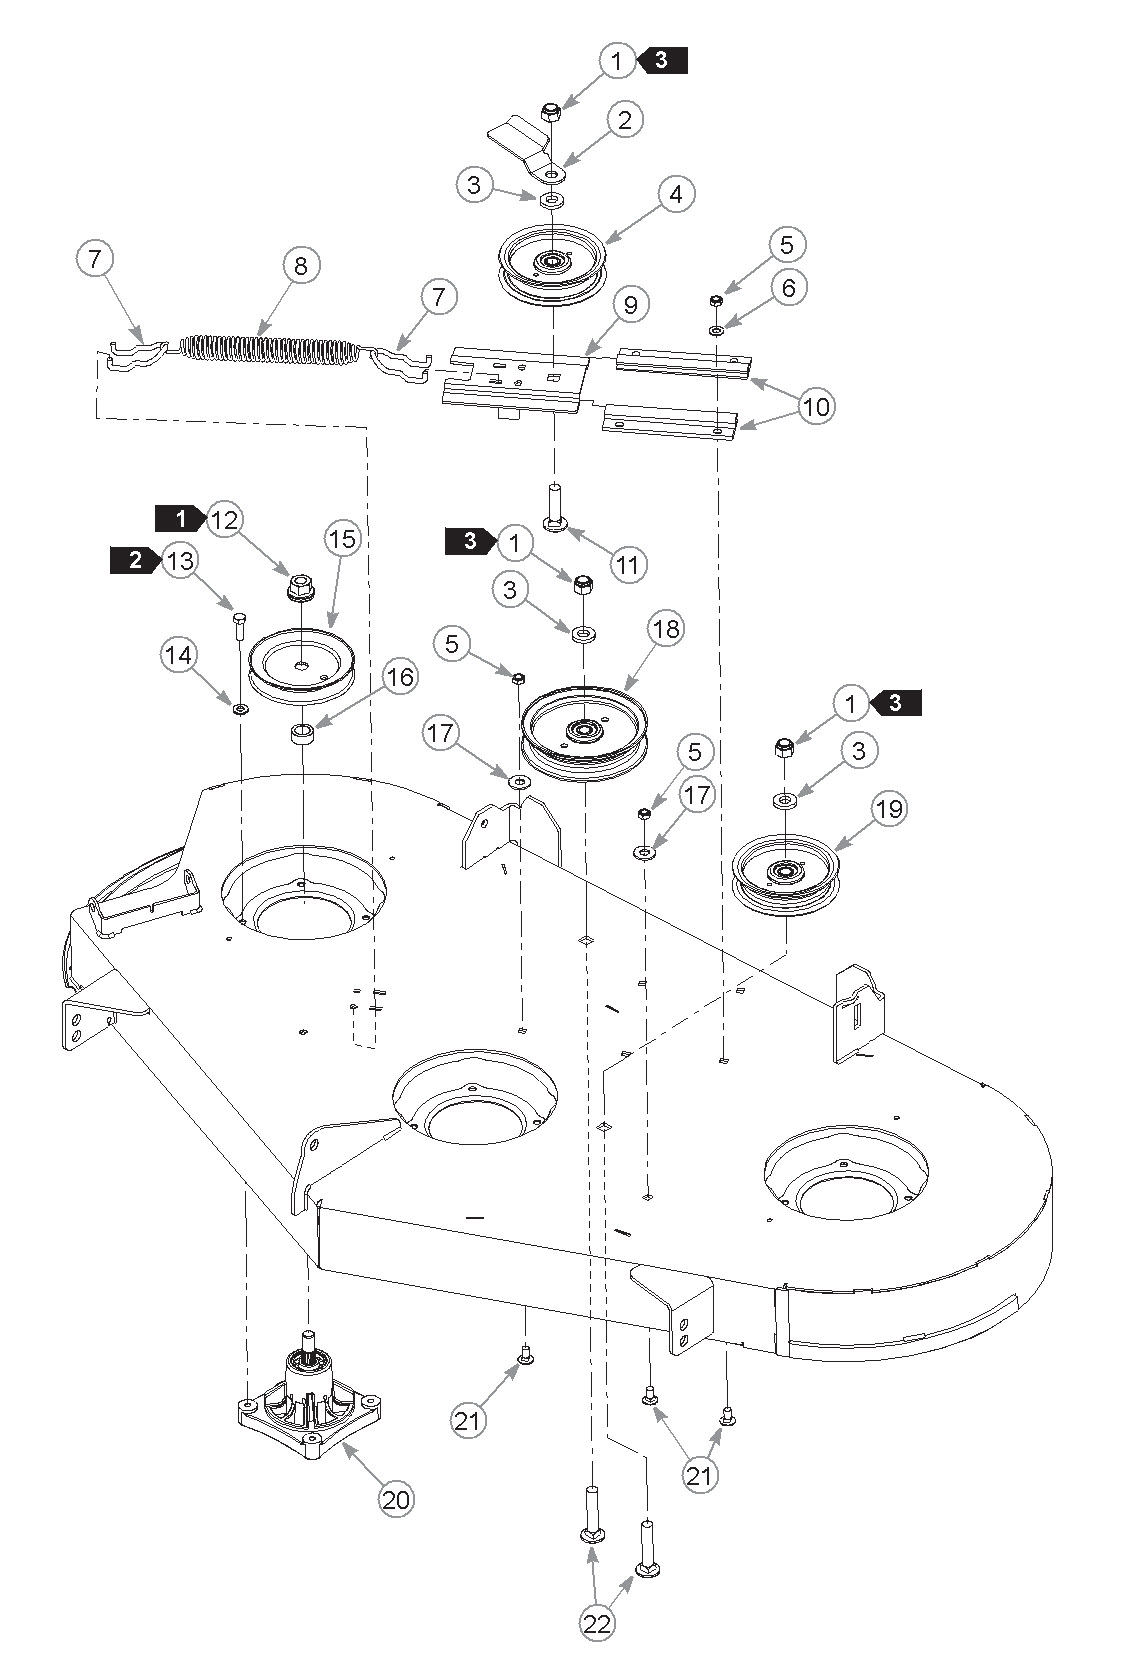 Deck Pulleys And Spindles Model 931899ex Mower Centre